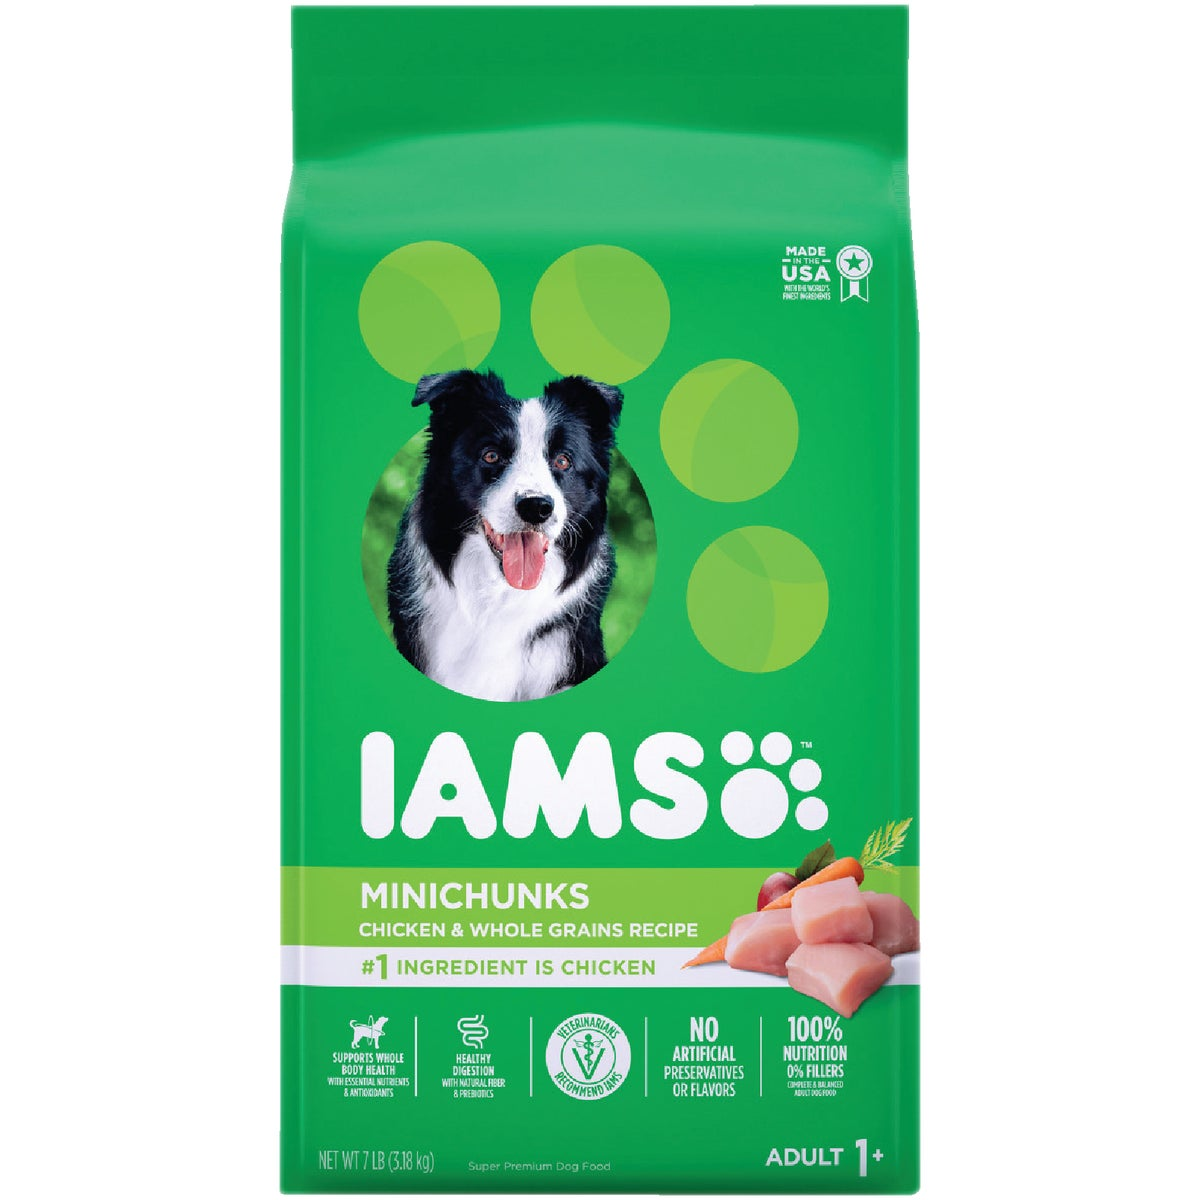 5.7LB MINICHUNK DOG FOOD - 10877 by Wolverton Iams